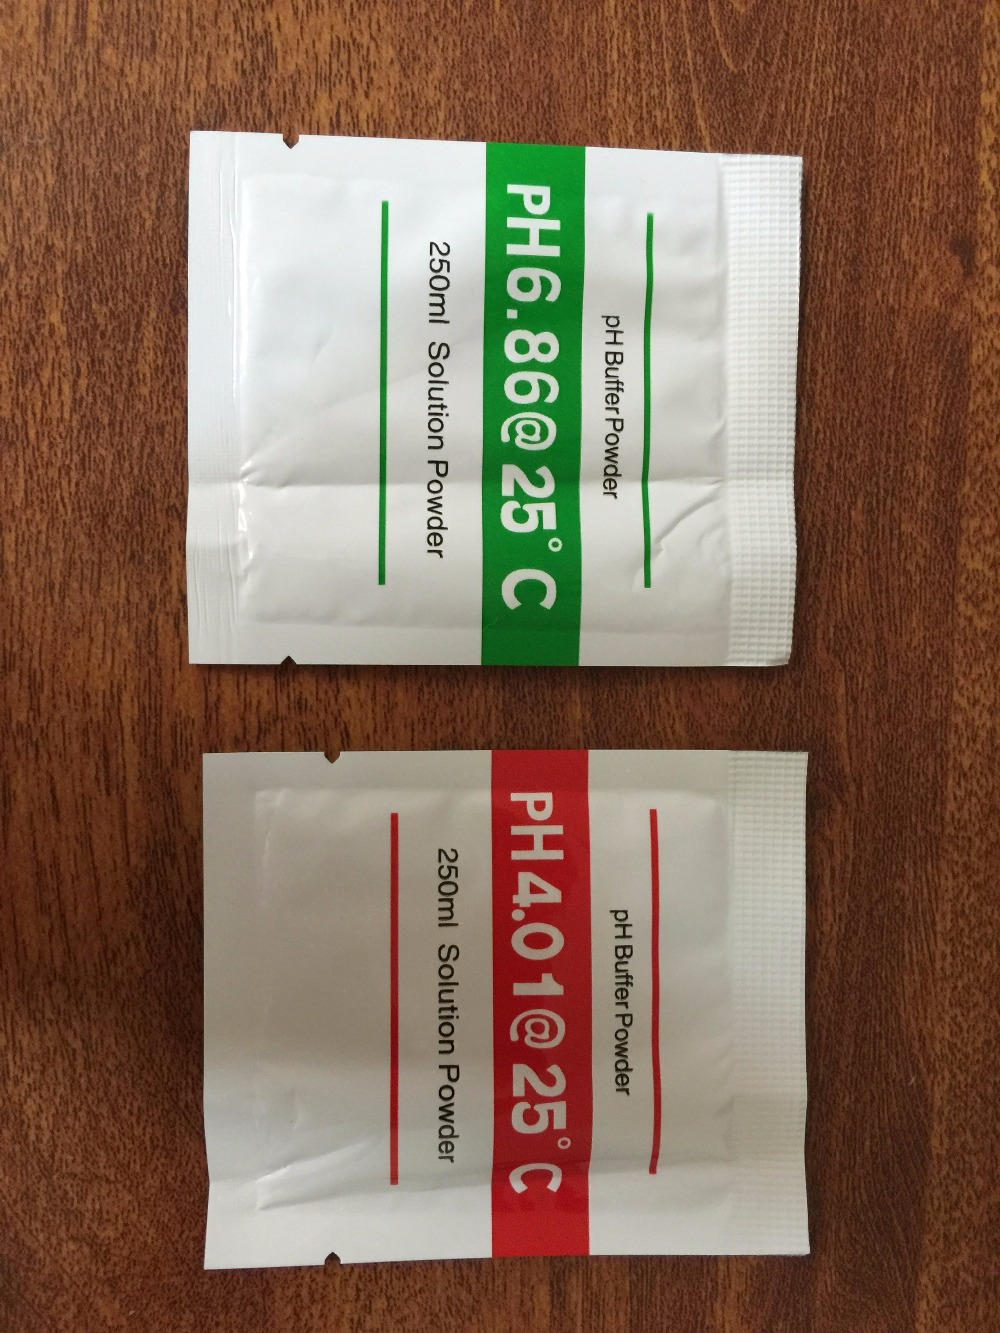 2 bags PH Buffer Powder for PH Test Meter Measure Calibration Solution 1pcs 4.01 and 1pcs 6.86 Calibration Point